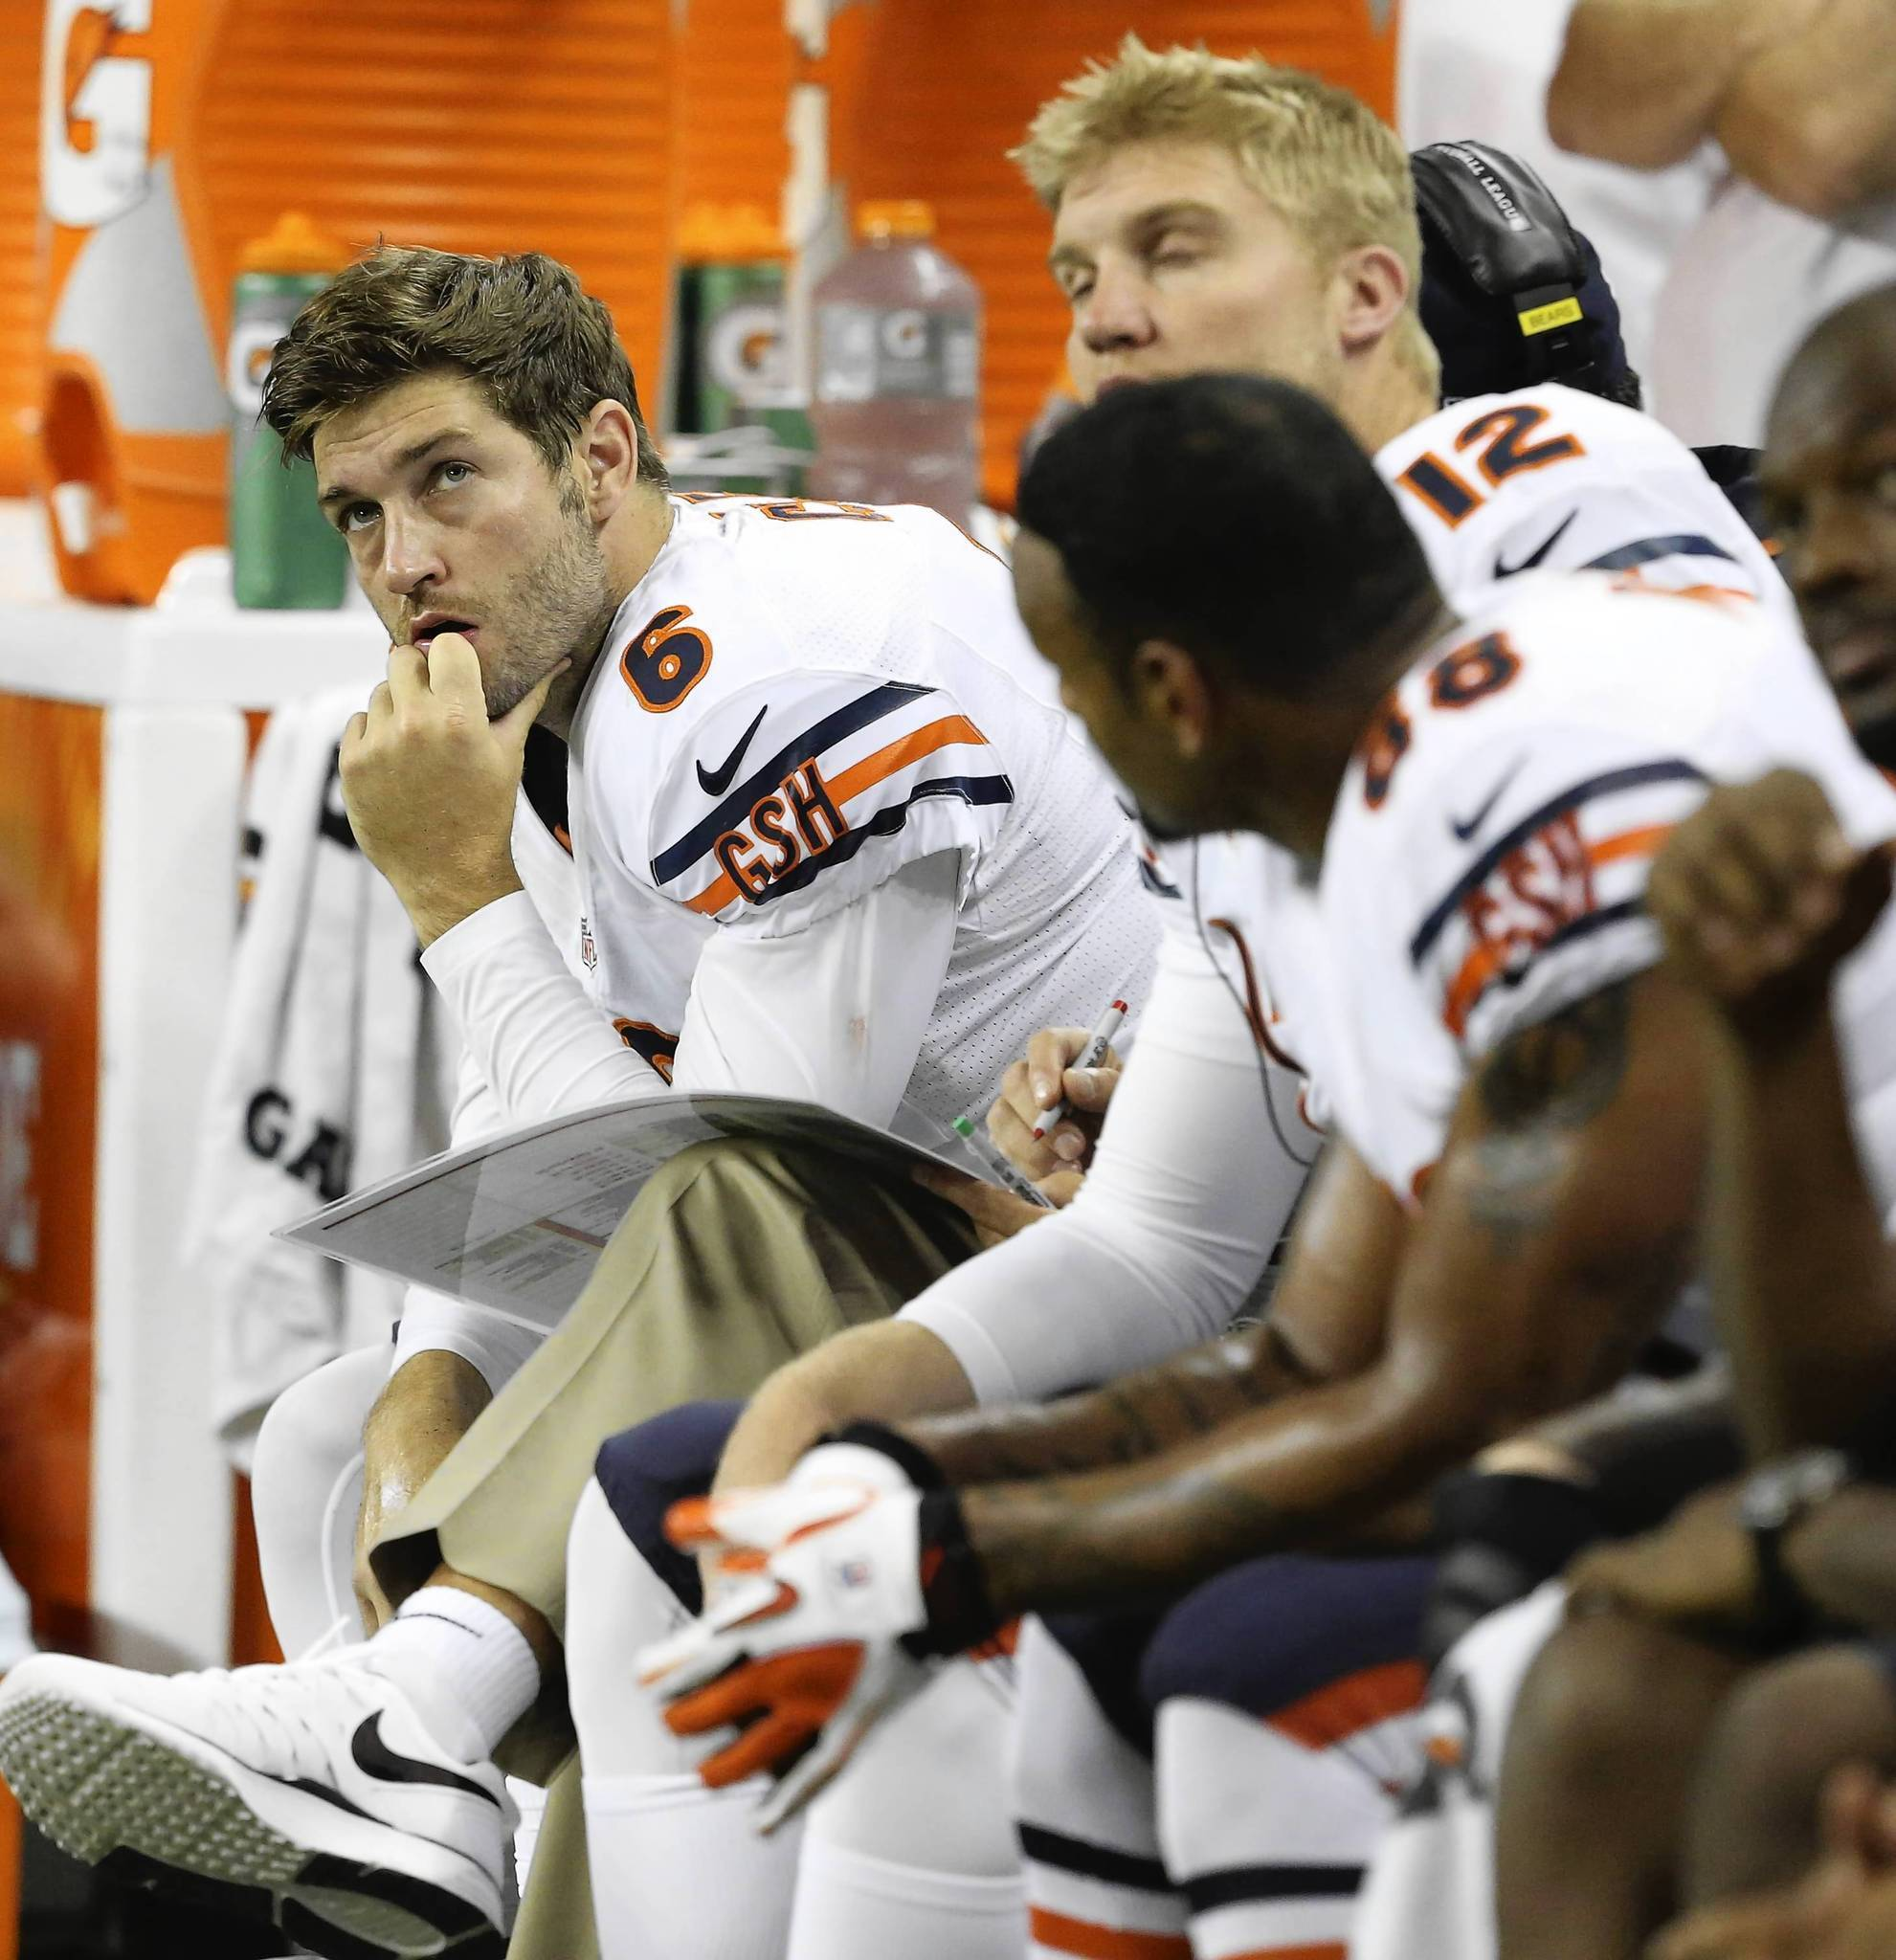 Mistakes pile up in Bears' 1st loss